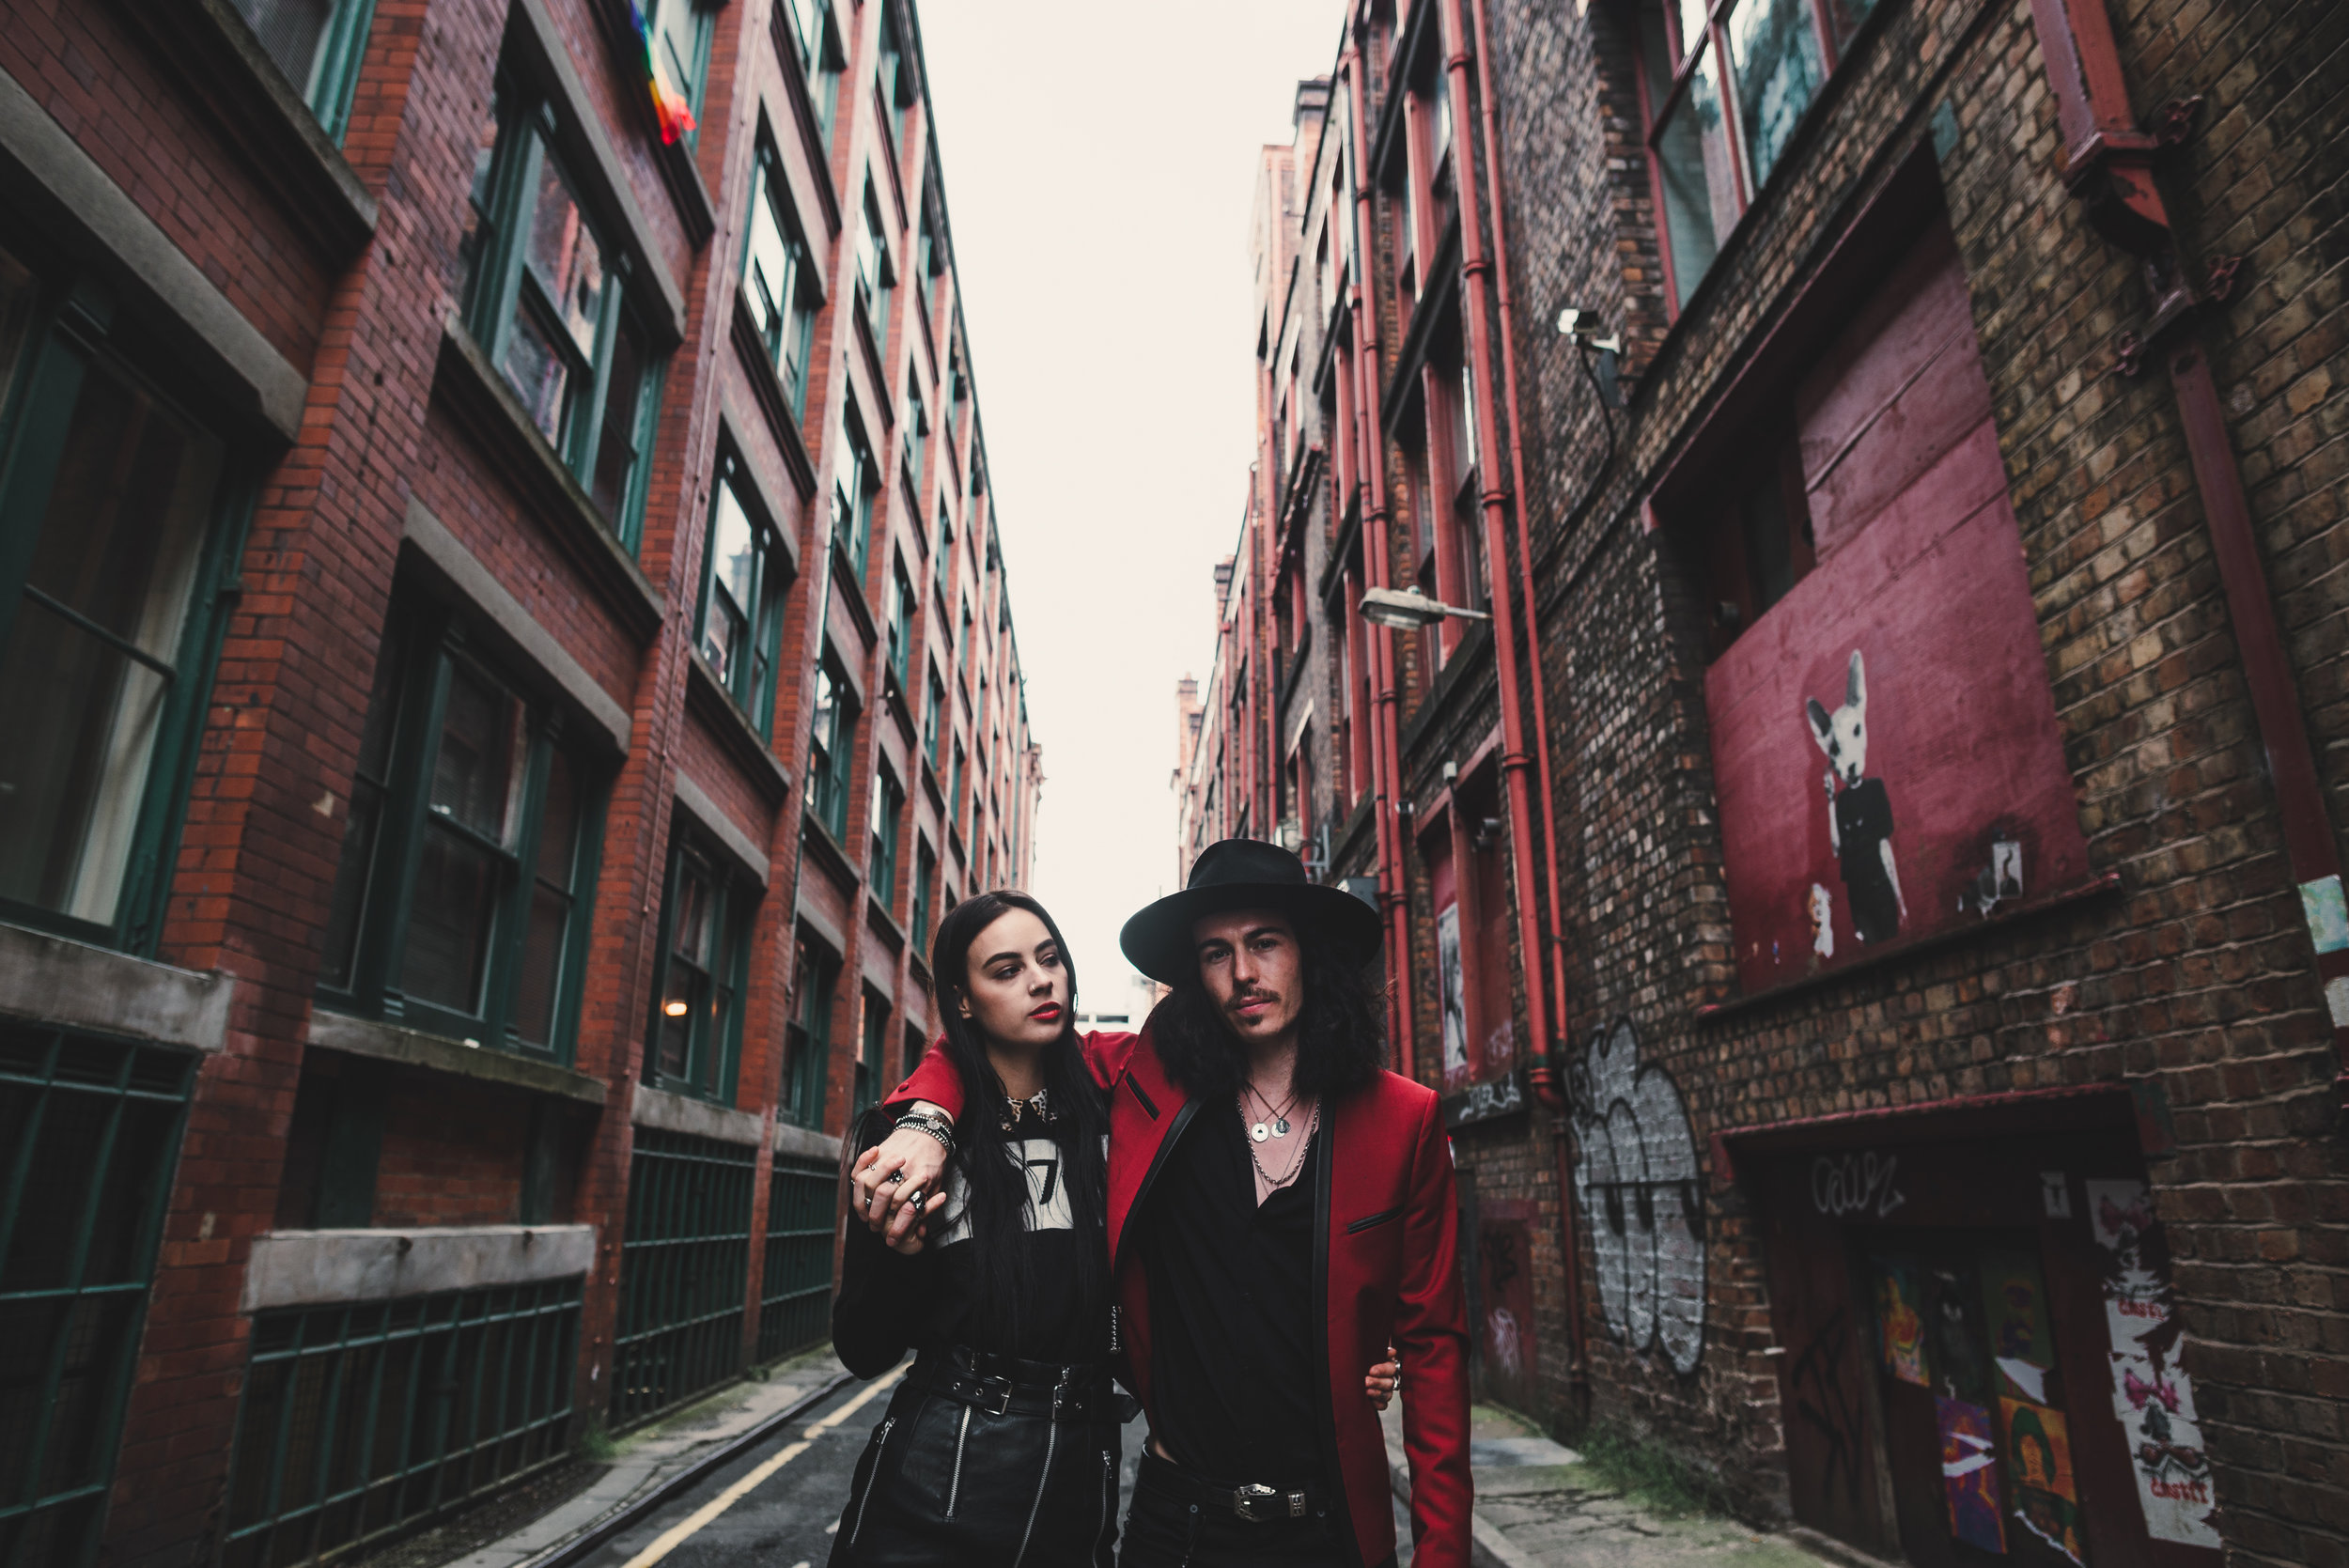 engagement-shoot-manchester-indie-fashion-photography-with-fashion-bloggers (15).jpg